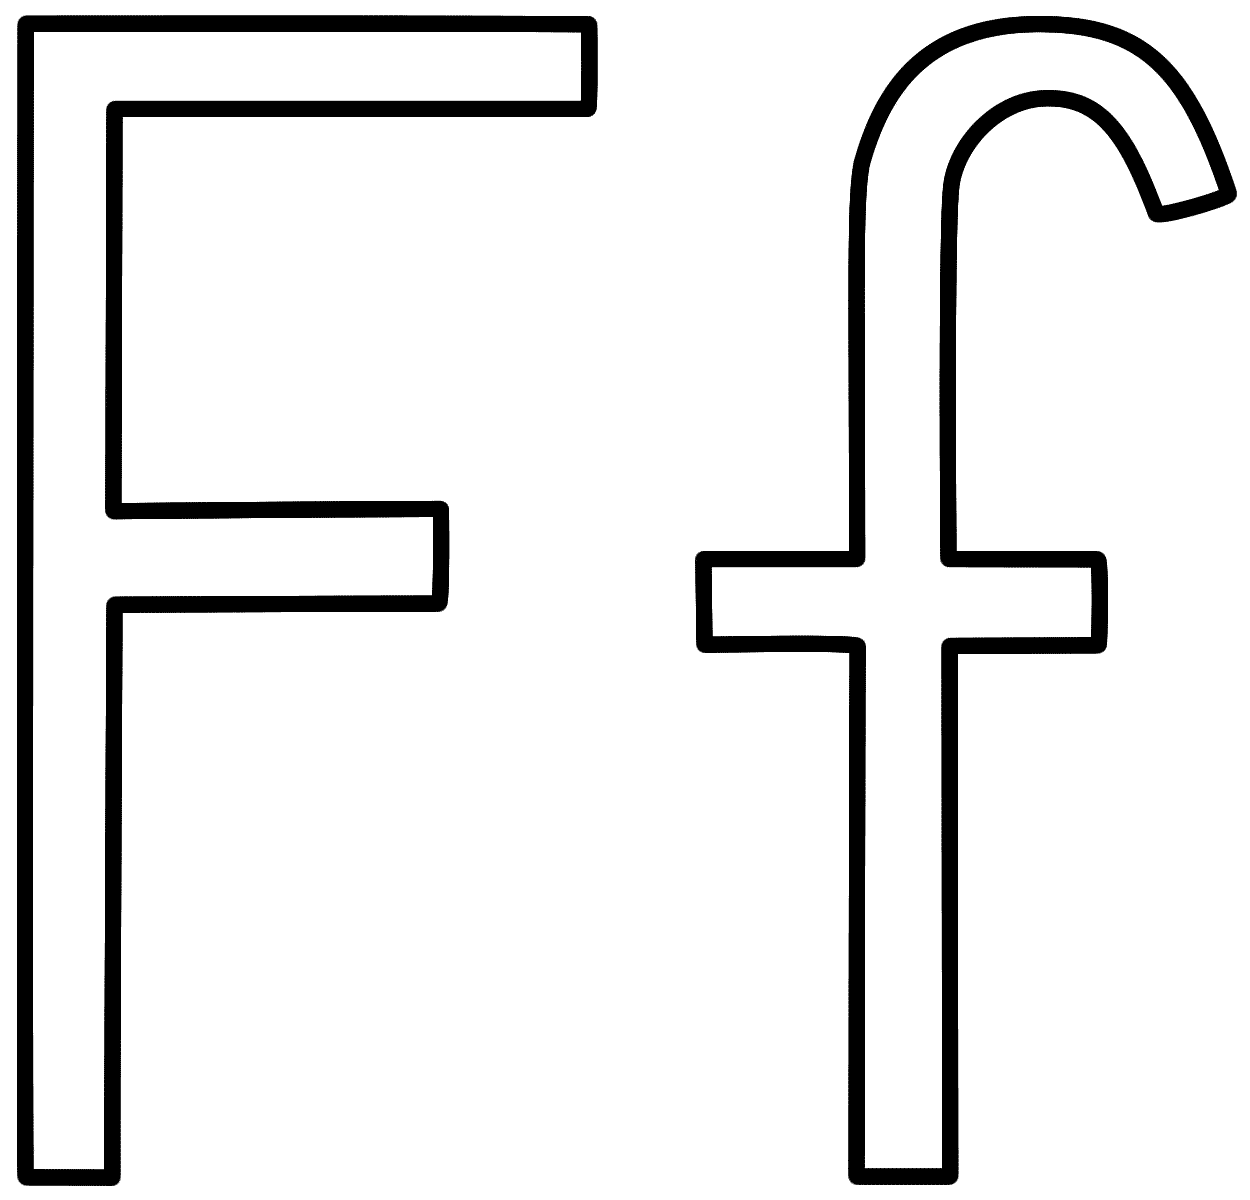 Letter F Printable Coloring Pages For Preschool